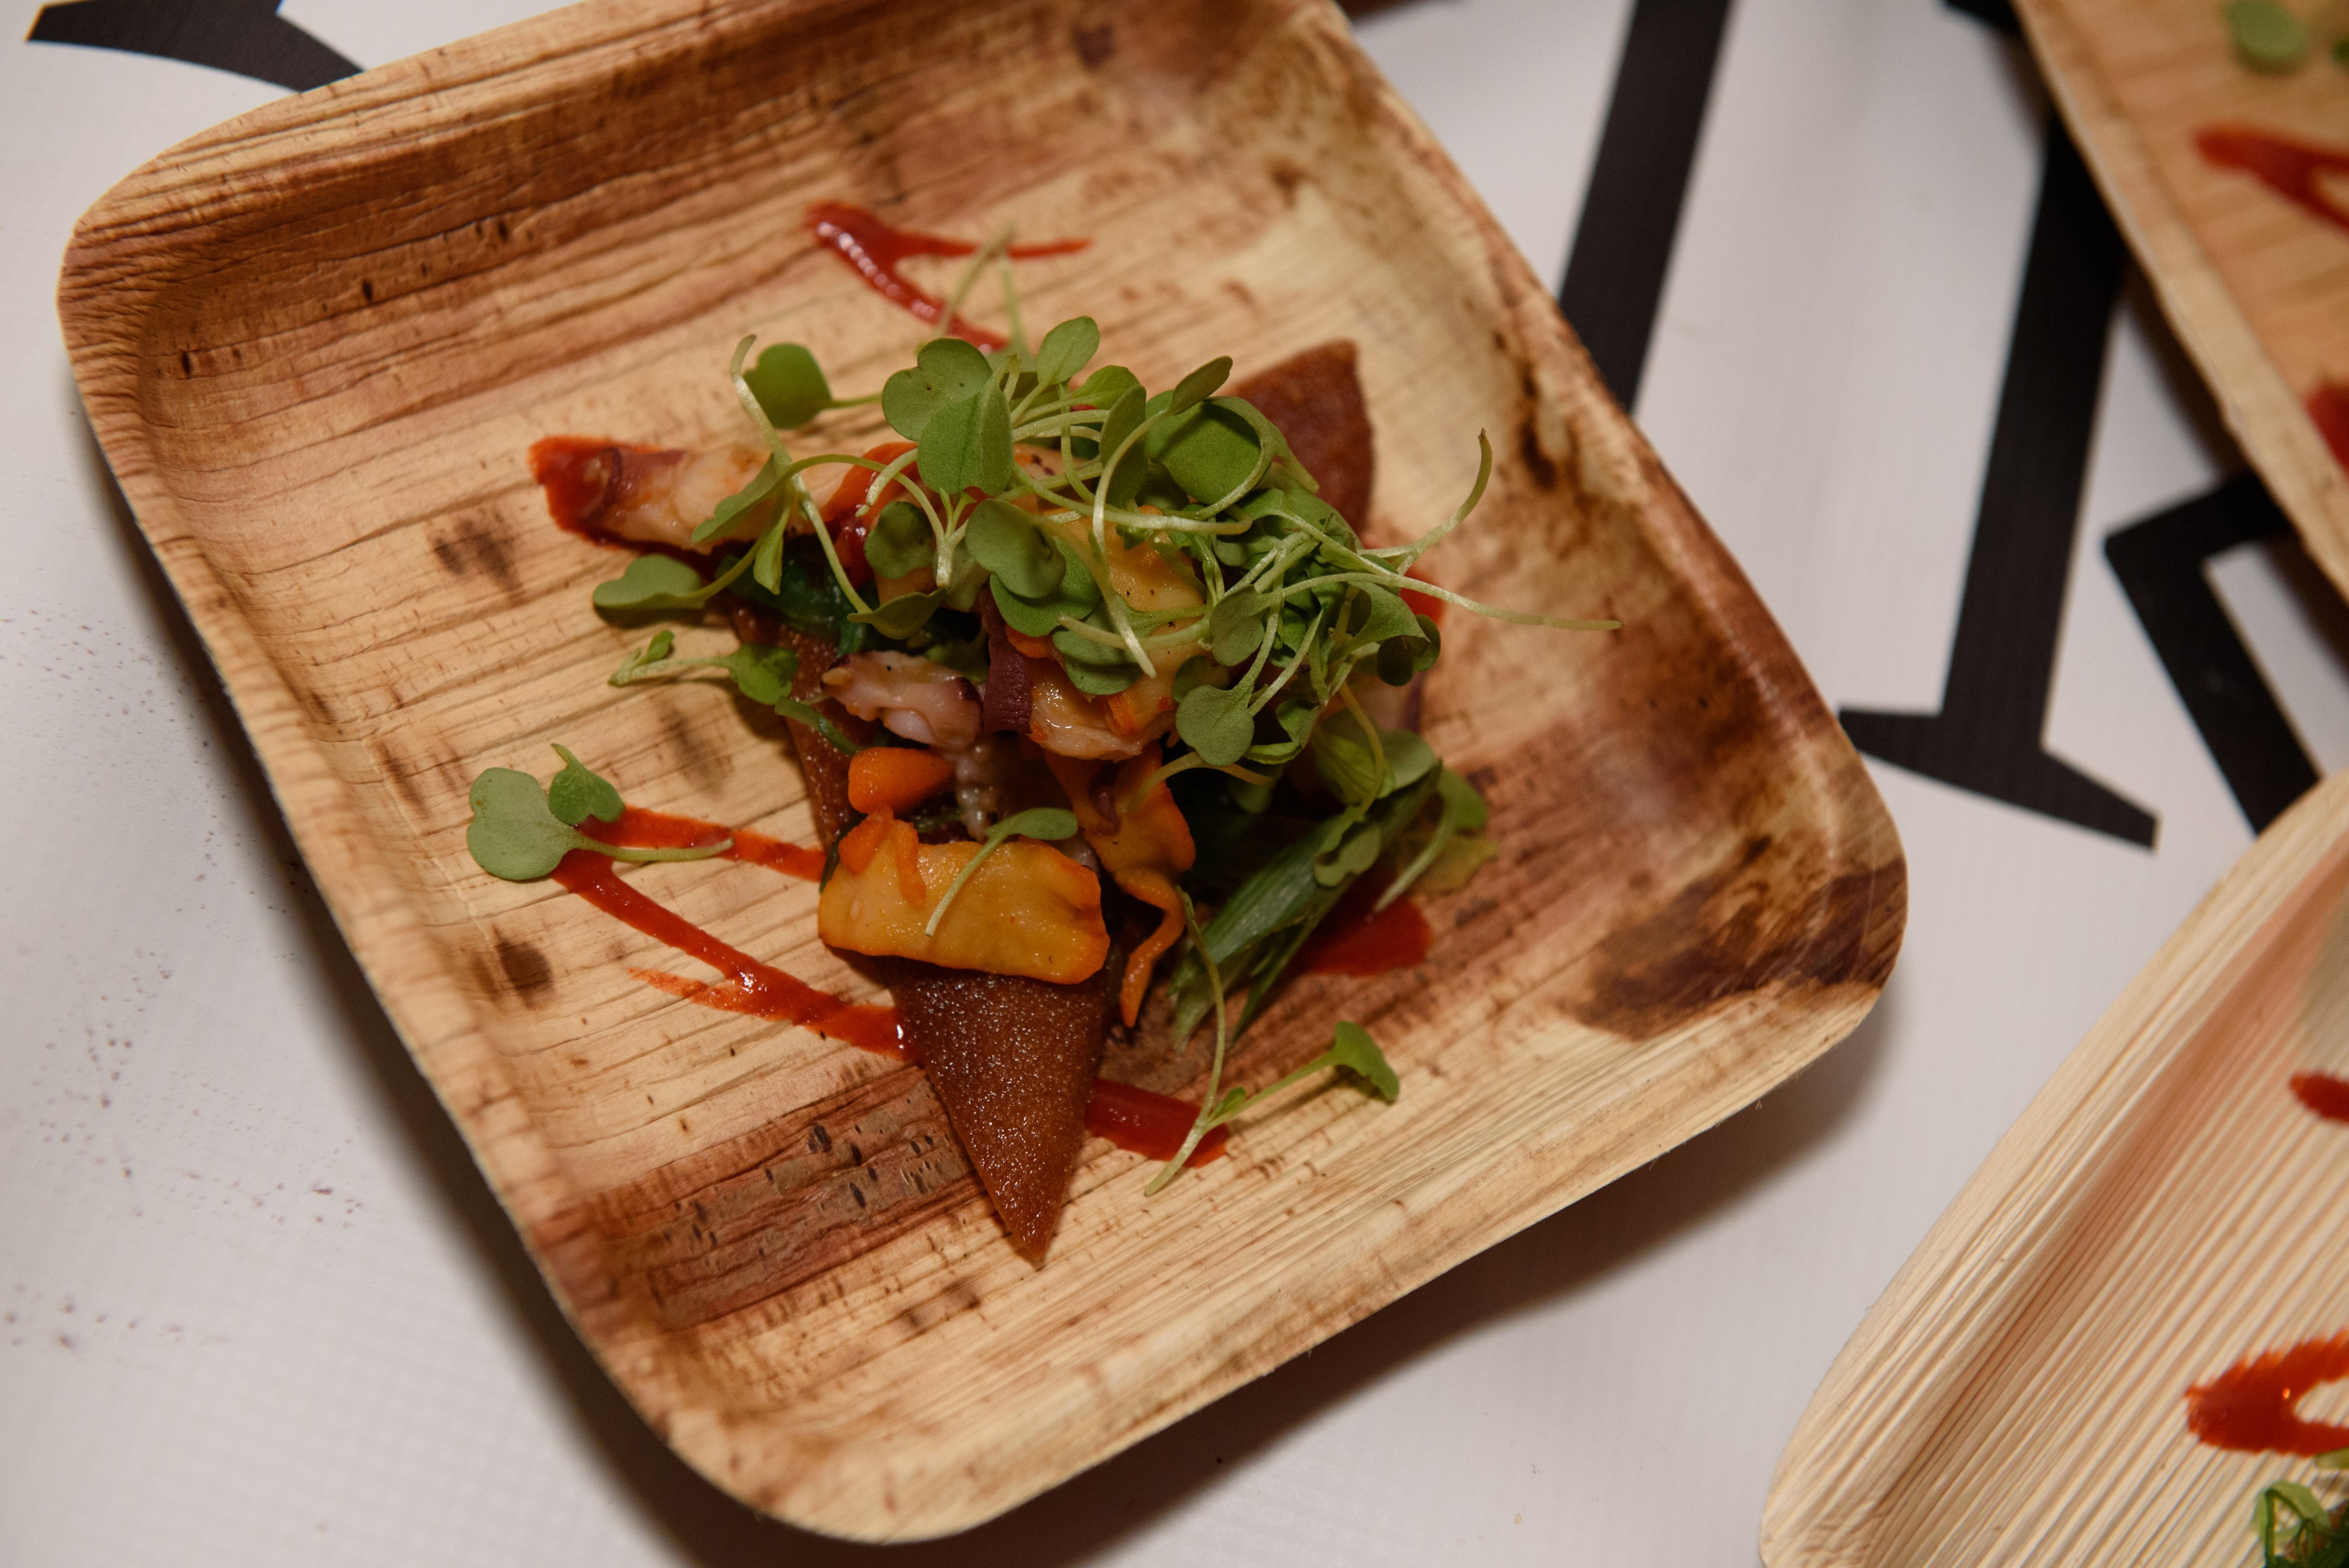 Good food meets food security at 4th Annual Farm-to-Fork Feast